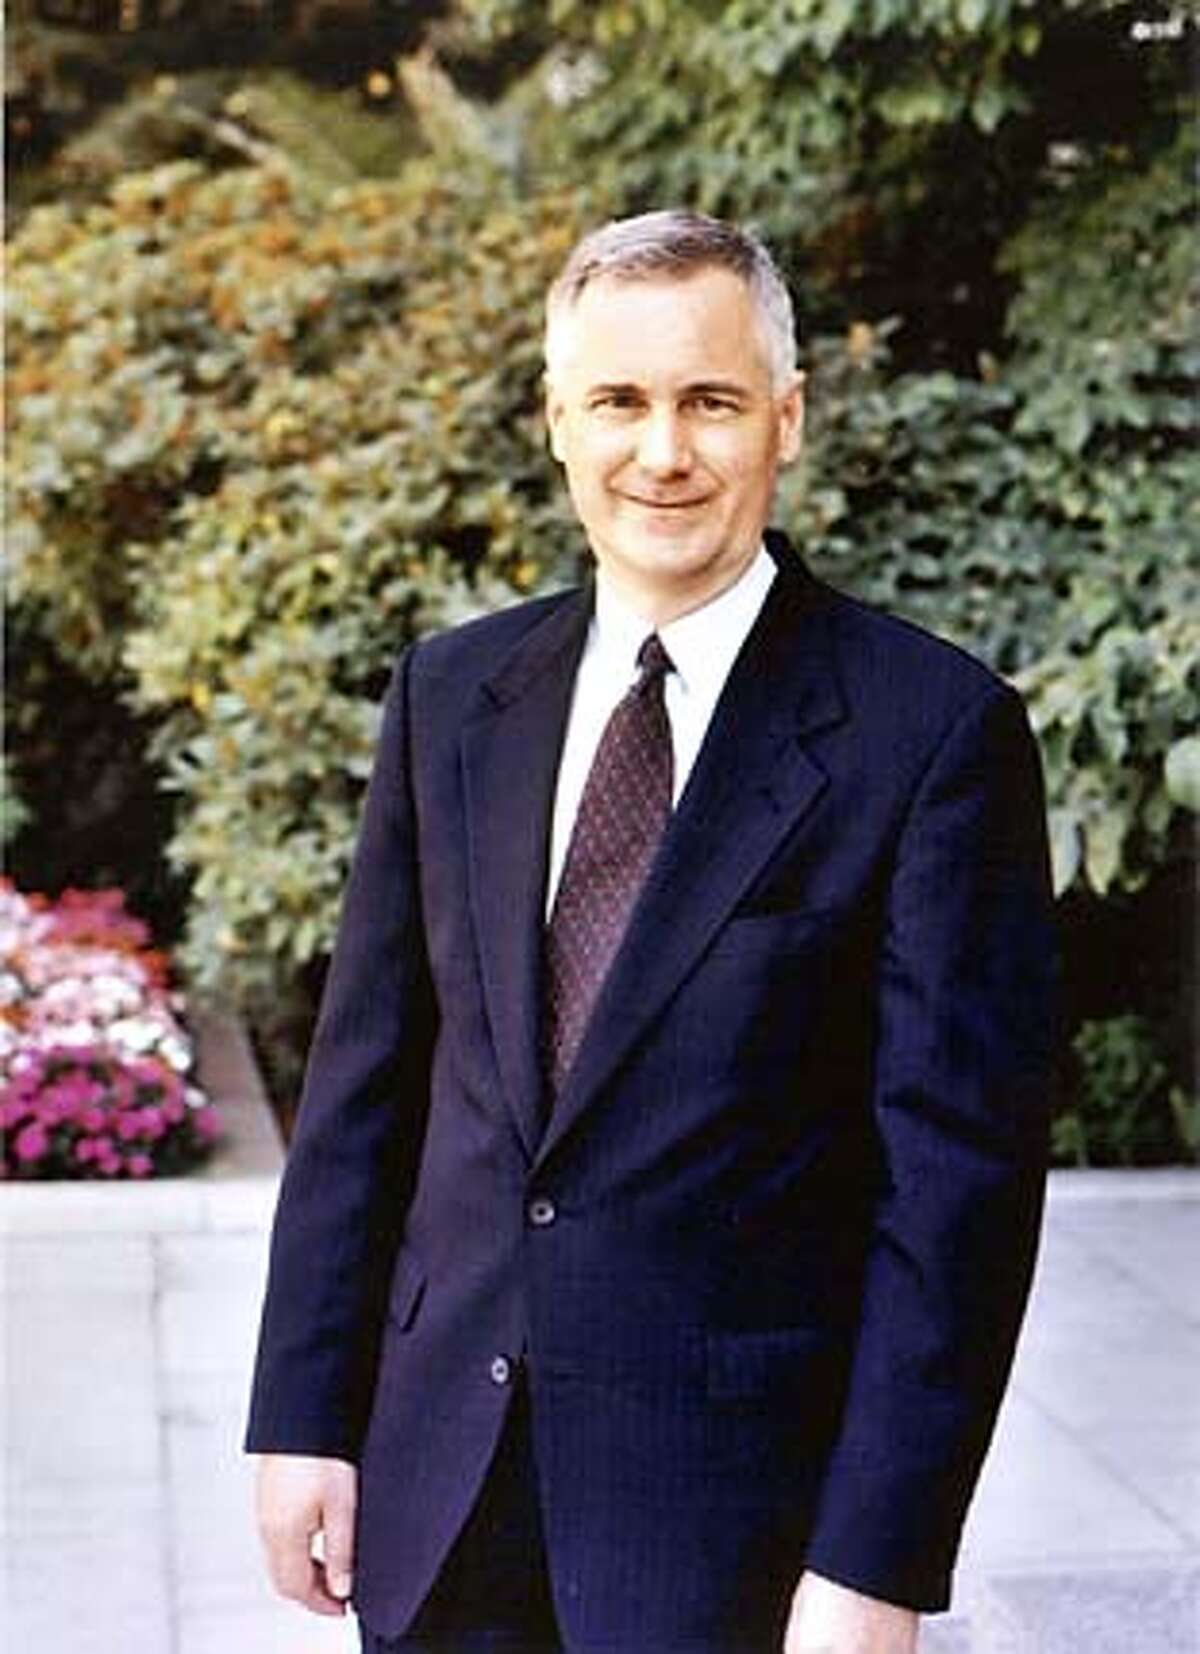 ** ADVANCE FOR USE ANYTIME ** State Sen. Tom McClintock, R-Northridge, seen in undate photo, is running unopposed for the Republican nomination for lieutenant governor in the June primary. McClintock will face the winner of the Democratic primary, either state Sen. Jackie Speier, D-Daly City, state Sen. Liz Figueroa, of Sunol, or Insurance Commissioner John Garamendi. (AP Photo/McClintock for Lieutenant Governor) ** ** Ran on: 05-26-2006 Liz Figueroa Ran on: 05-26-2006 Ran on: 05-26-2006 Liz Figueroa Ran on: 05-26-2006 Liz Figueroa Ran on: 05-28-2006 Ran on: 05-28-2006 Ran on: 06-07-2006 Jackie Speier Ran on: 06-07-2006 Jackie Speier ADVANCE FOR USE ANYTIME, UNDATED PHOTO PROVIDED BY MCCLINTOCK FOR LIEUTENANT GOVERNOR,